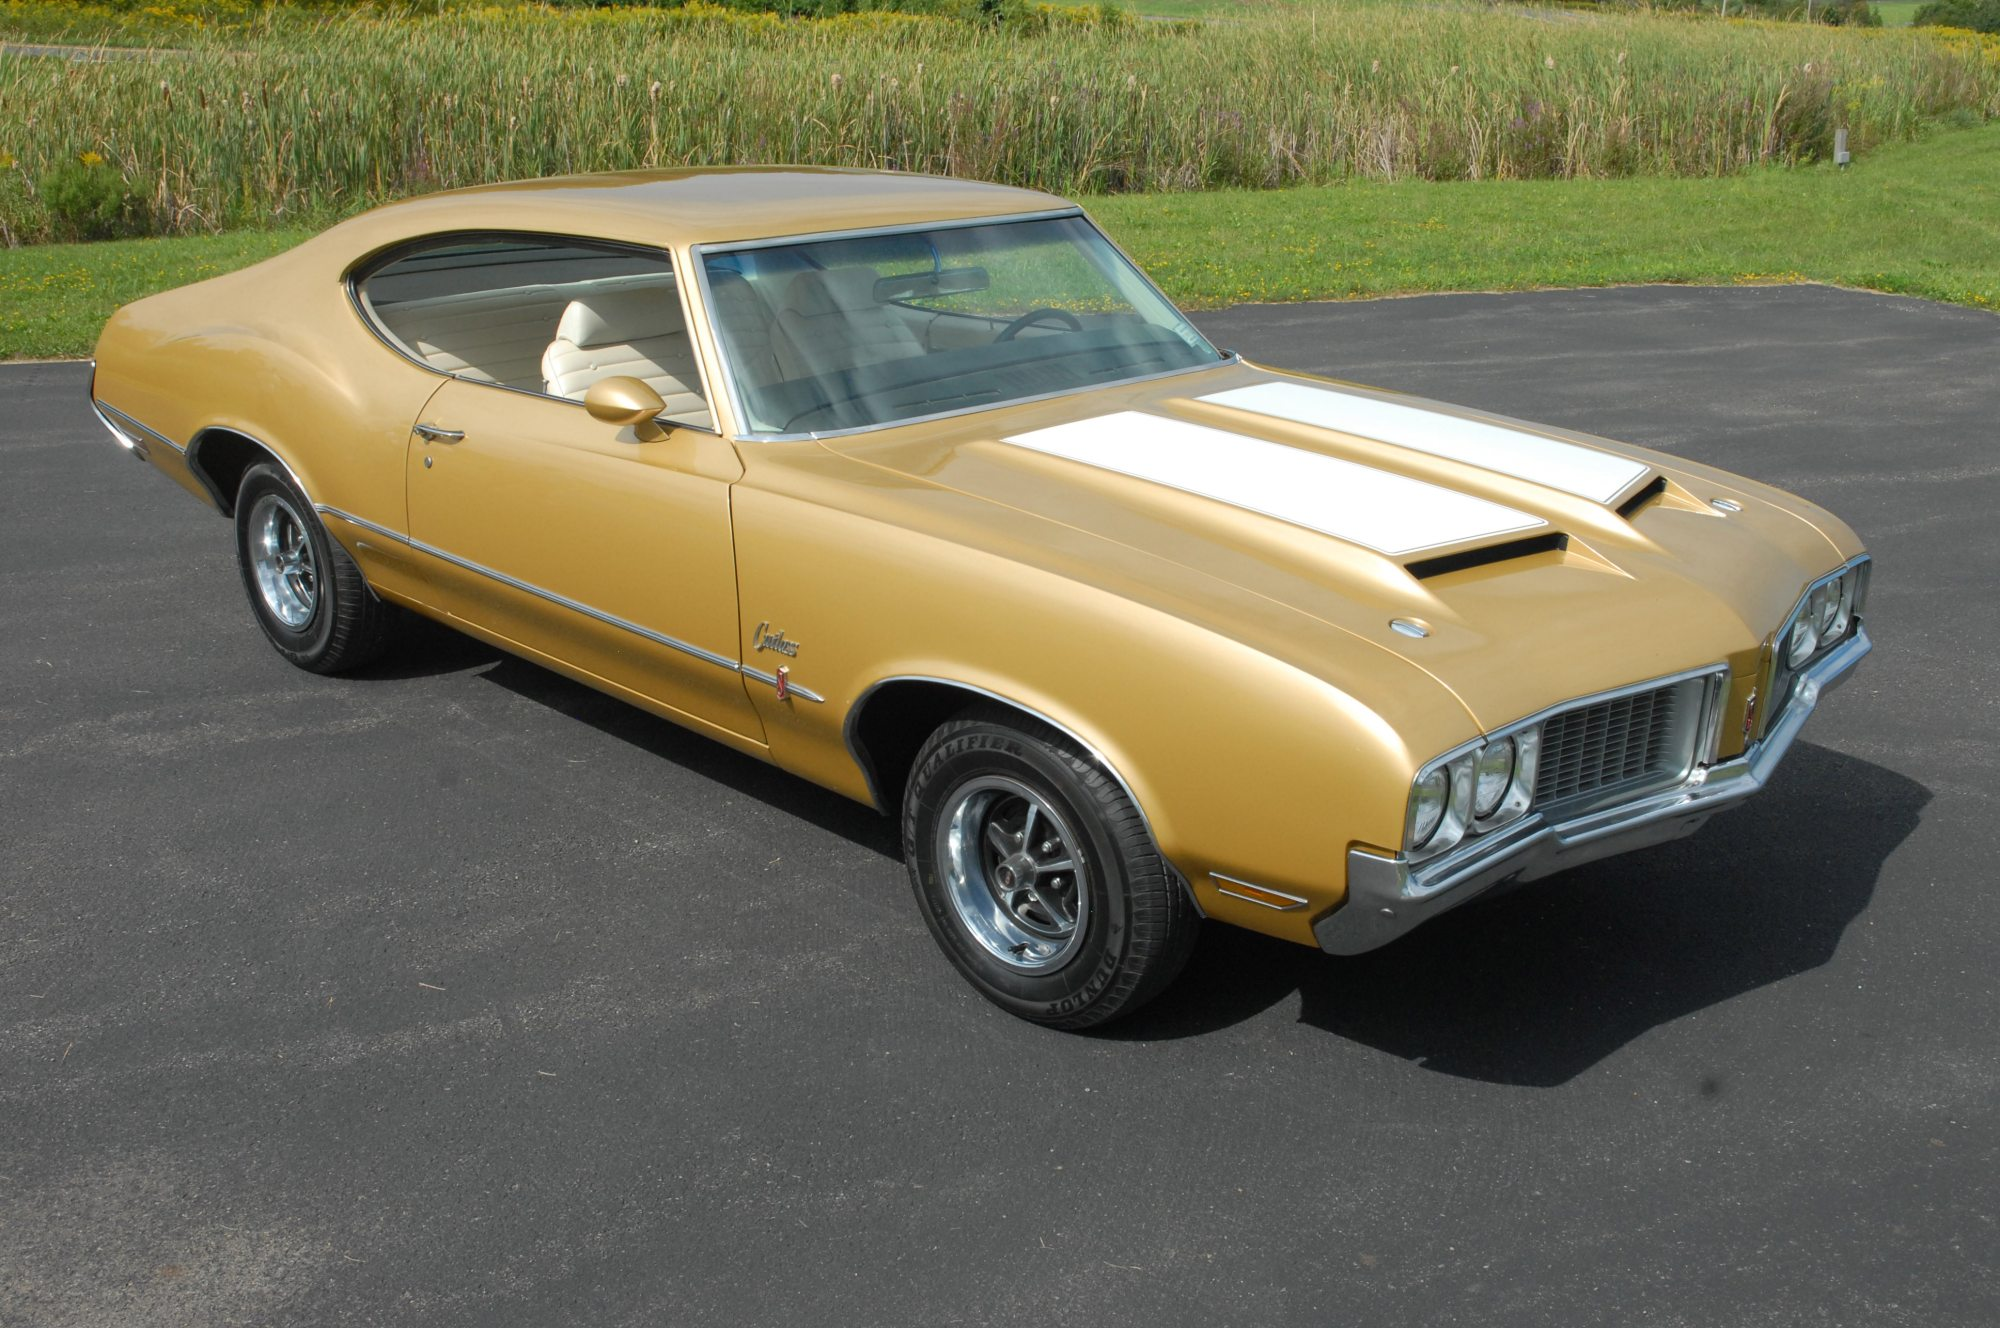 hight resolution of 001 wolfe 1970 oldsmobile cutlass s front three quarter